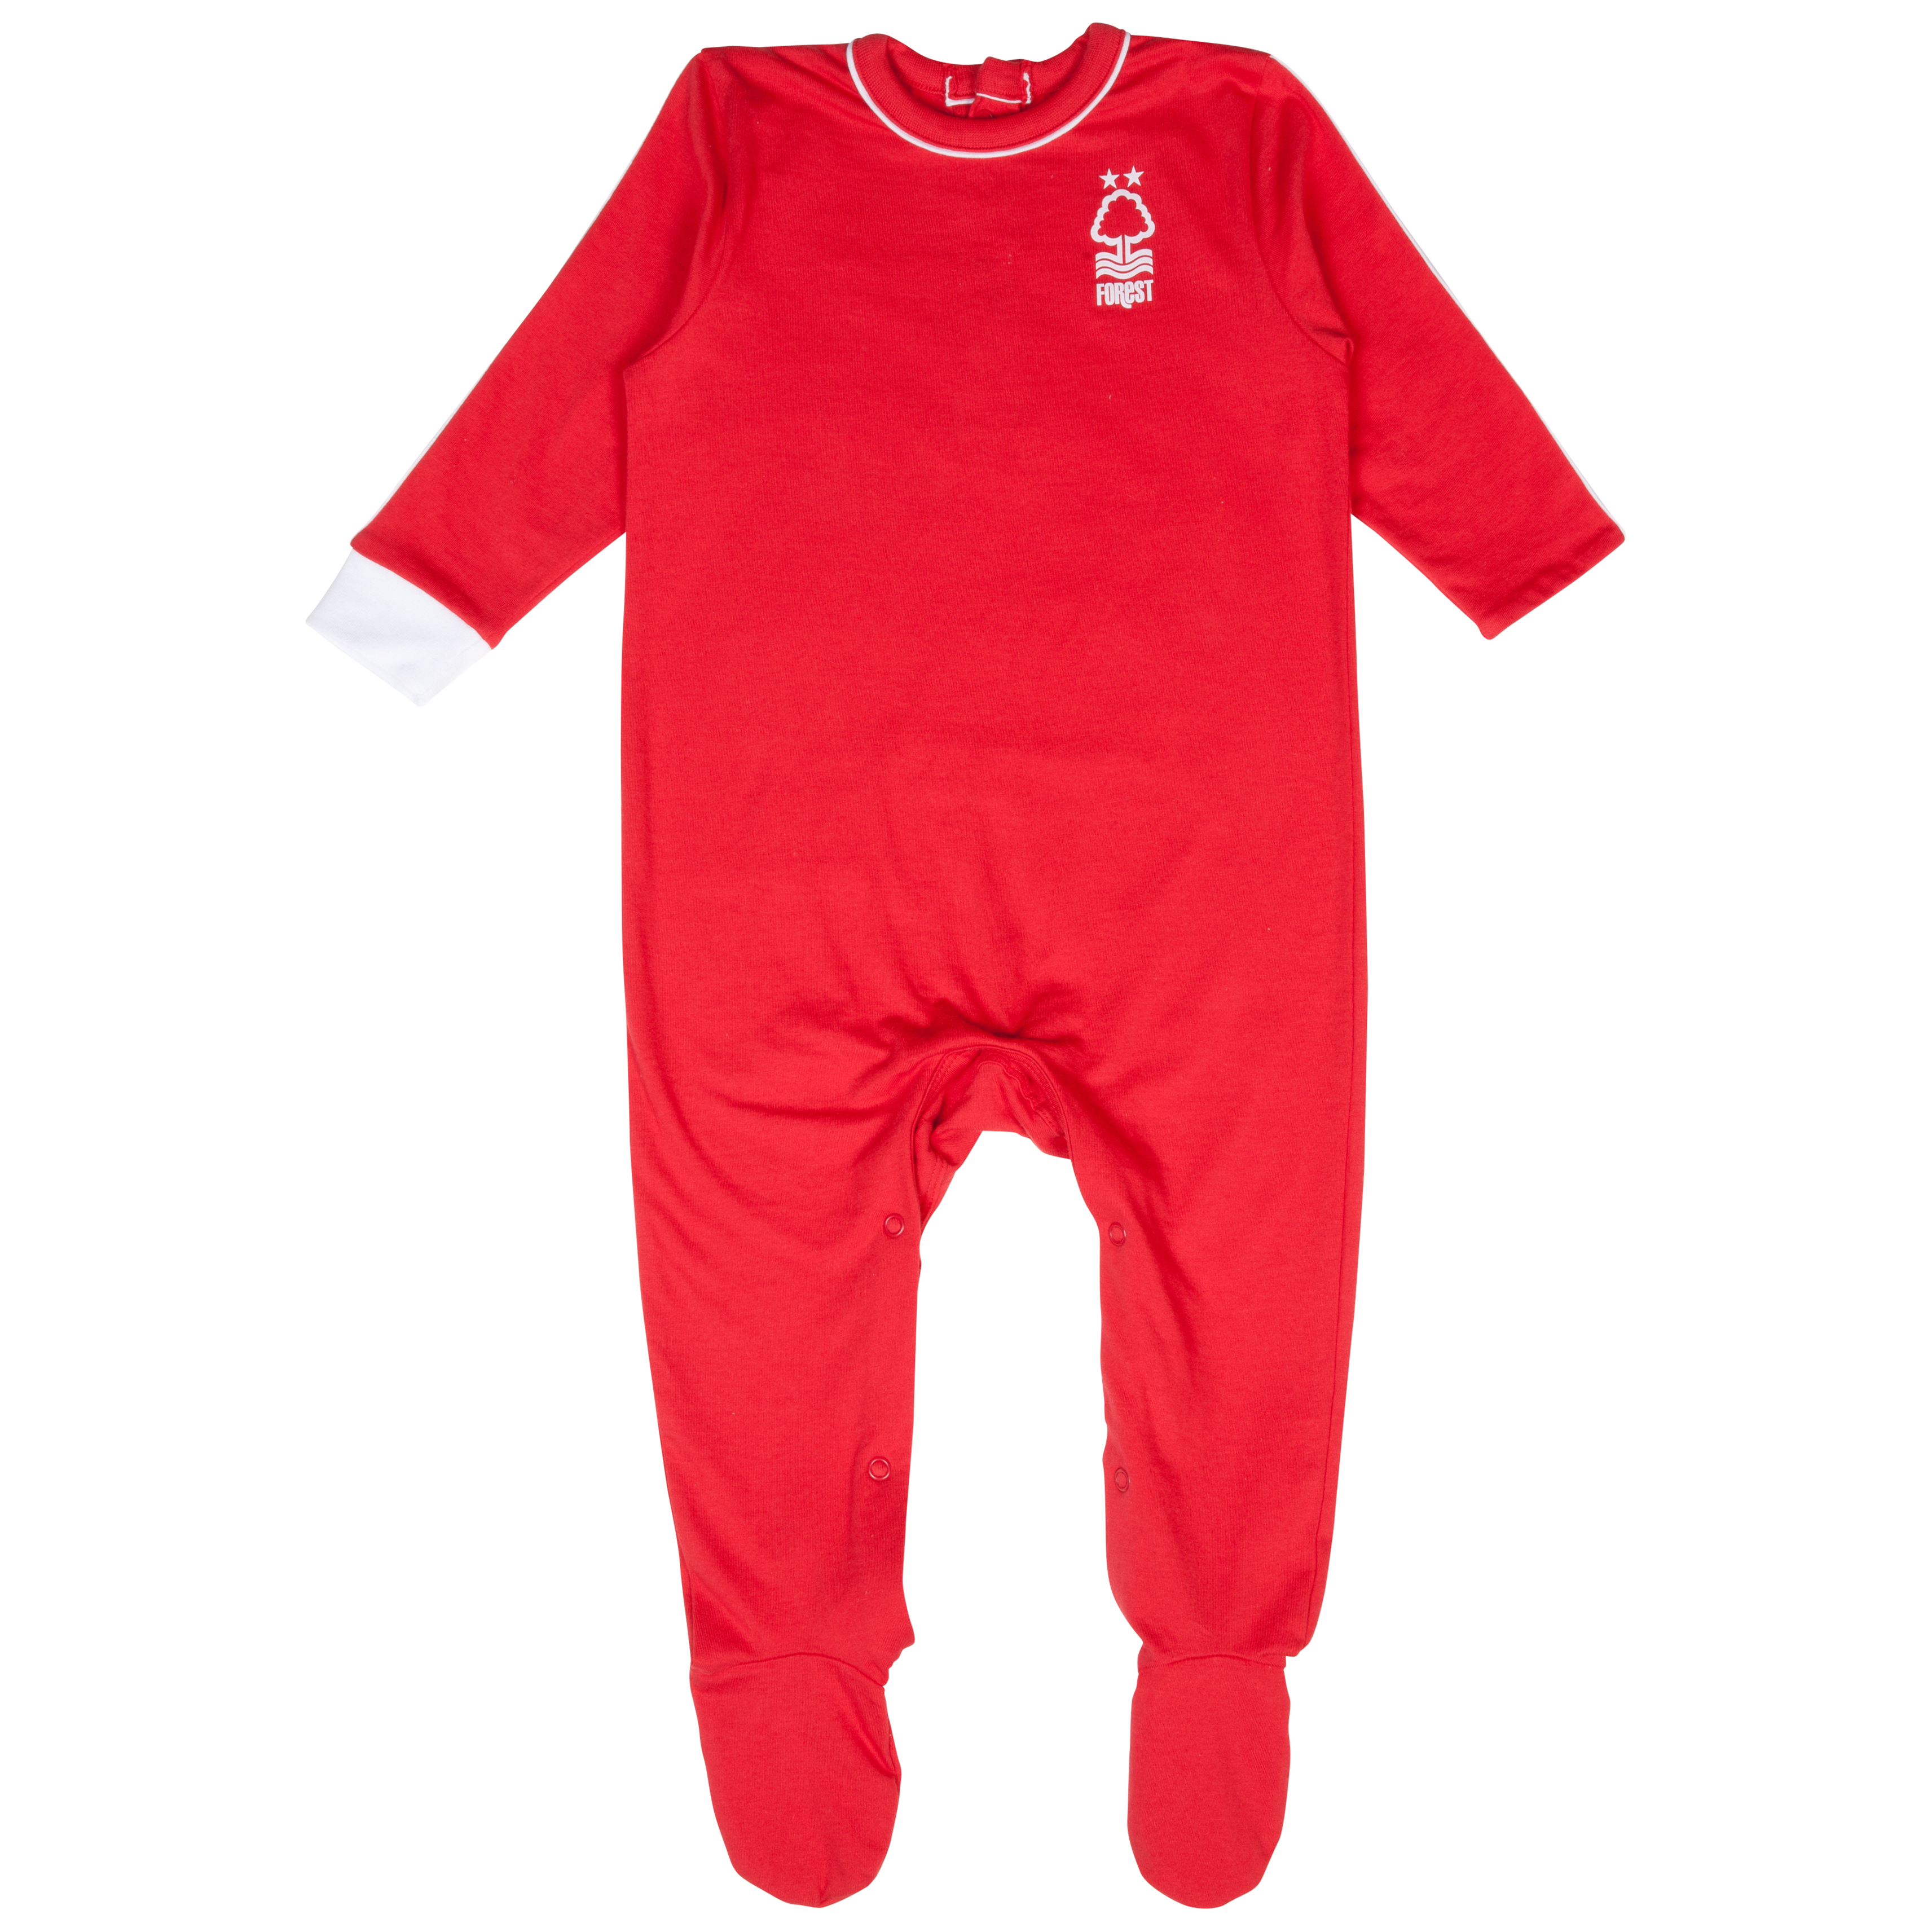 Nottingham Forest 13/14 Kit Sleepsuit - Red - Baby